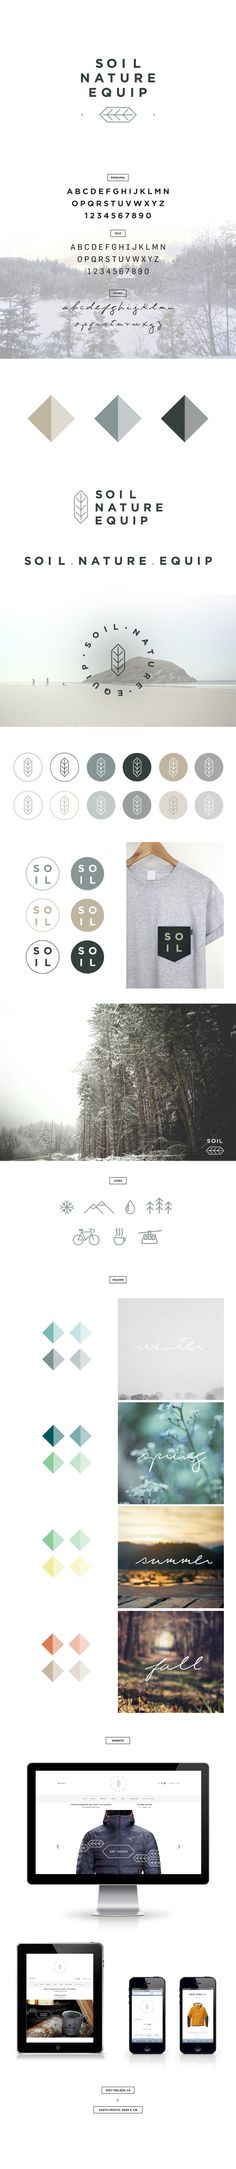 SOIL NATURE EQUIP by Eliane Cadieux, | Look at the rest of the images, great color scheme, typography, all the elements | #stationary #corporate #design #corporatedesign #identity #branding #marketing repinned by www.BlickeDeeler.de | Visit our website: www.blickedeeler.de/leistungen/corporate-design